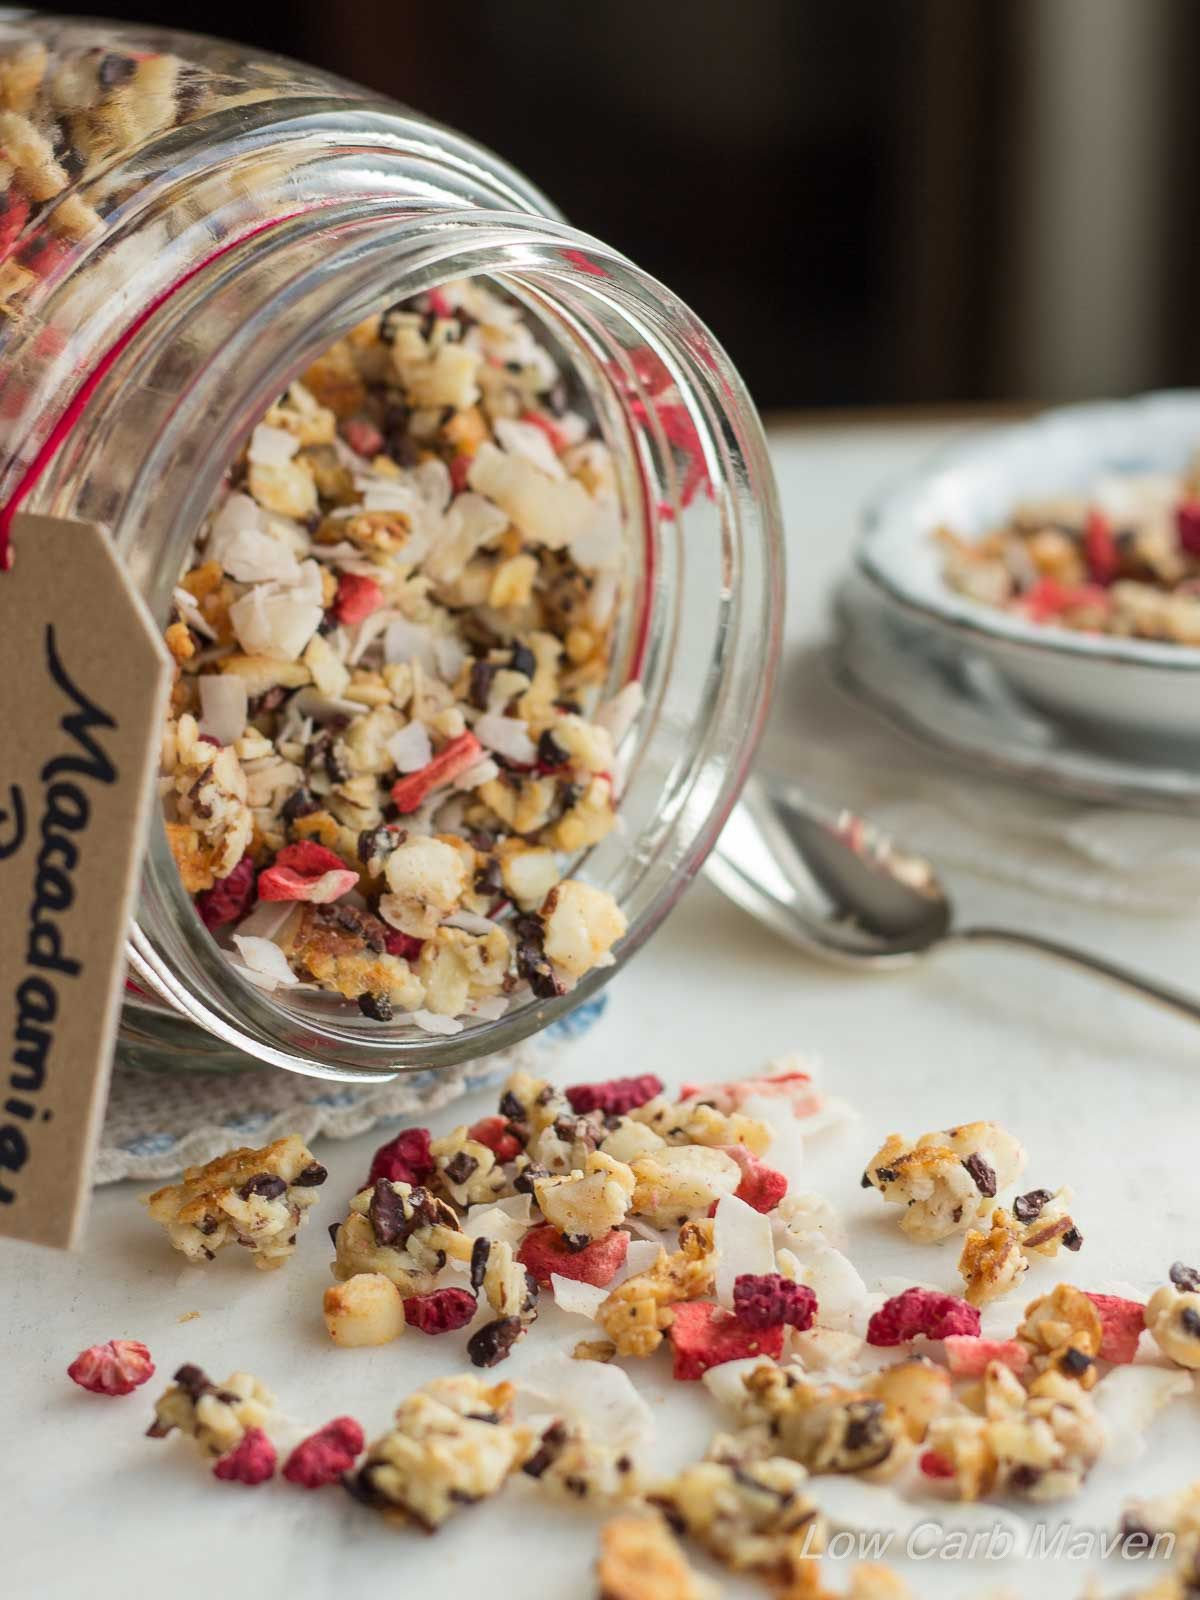 Low carb granola with macadamia nuts, coconut flakes, and cacao nibs collide with freeze dried ...